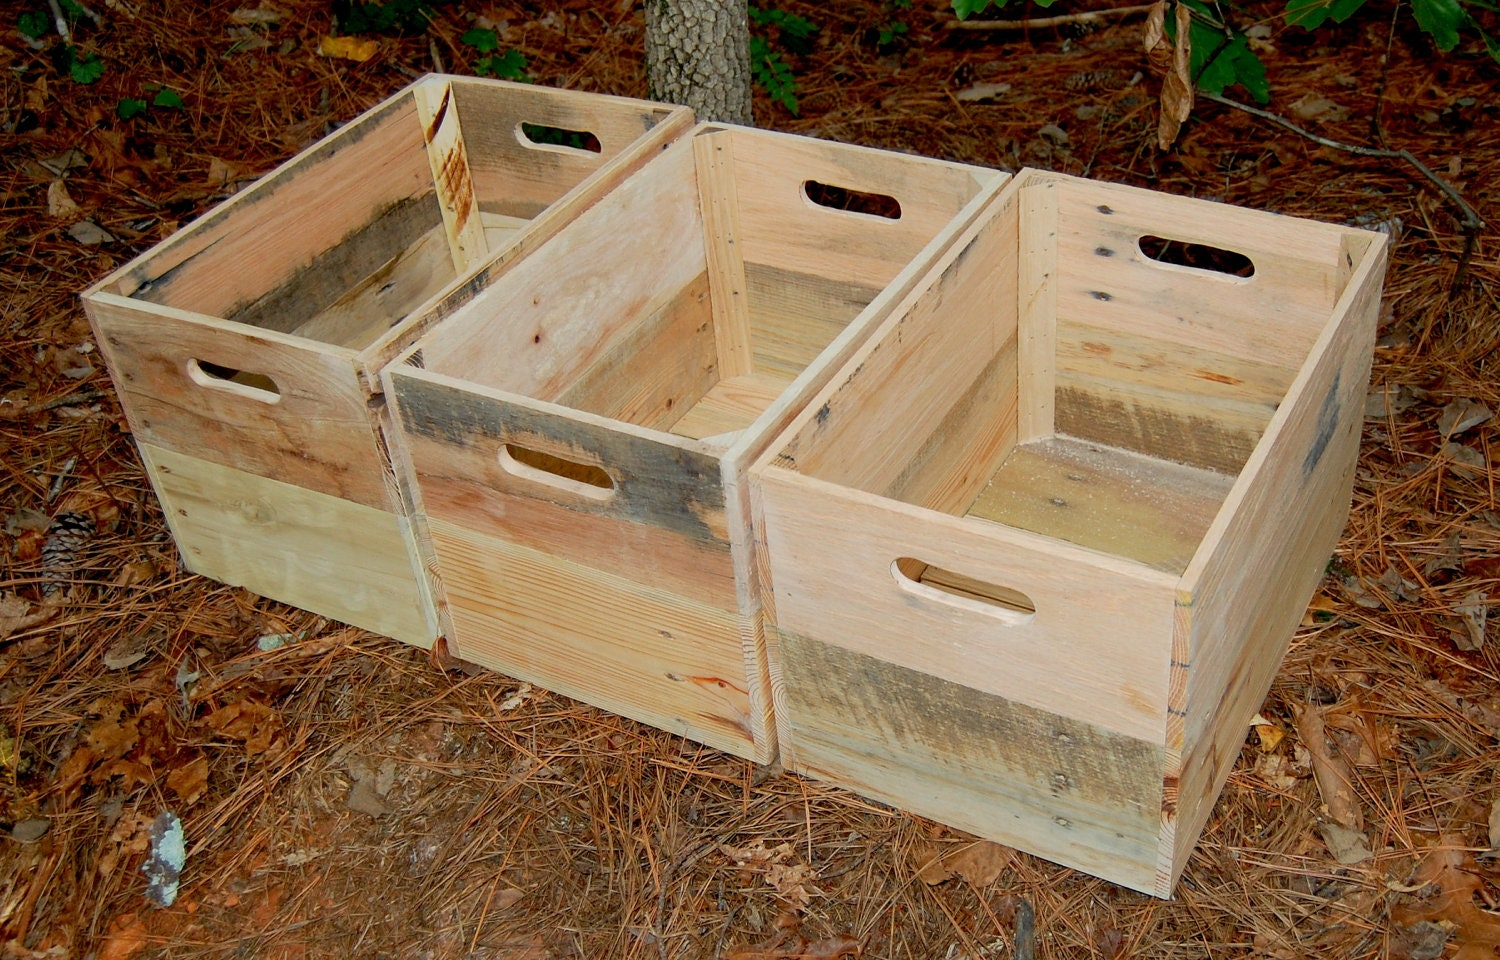 Three Wood Crates/ Recycled Pallet/ Wooden Crate/ Unfinished/